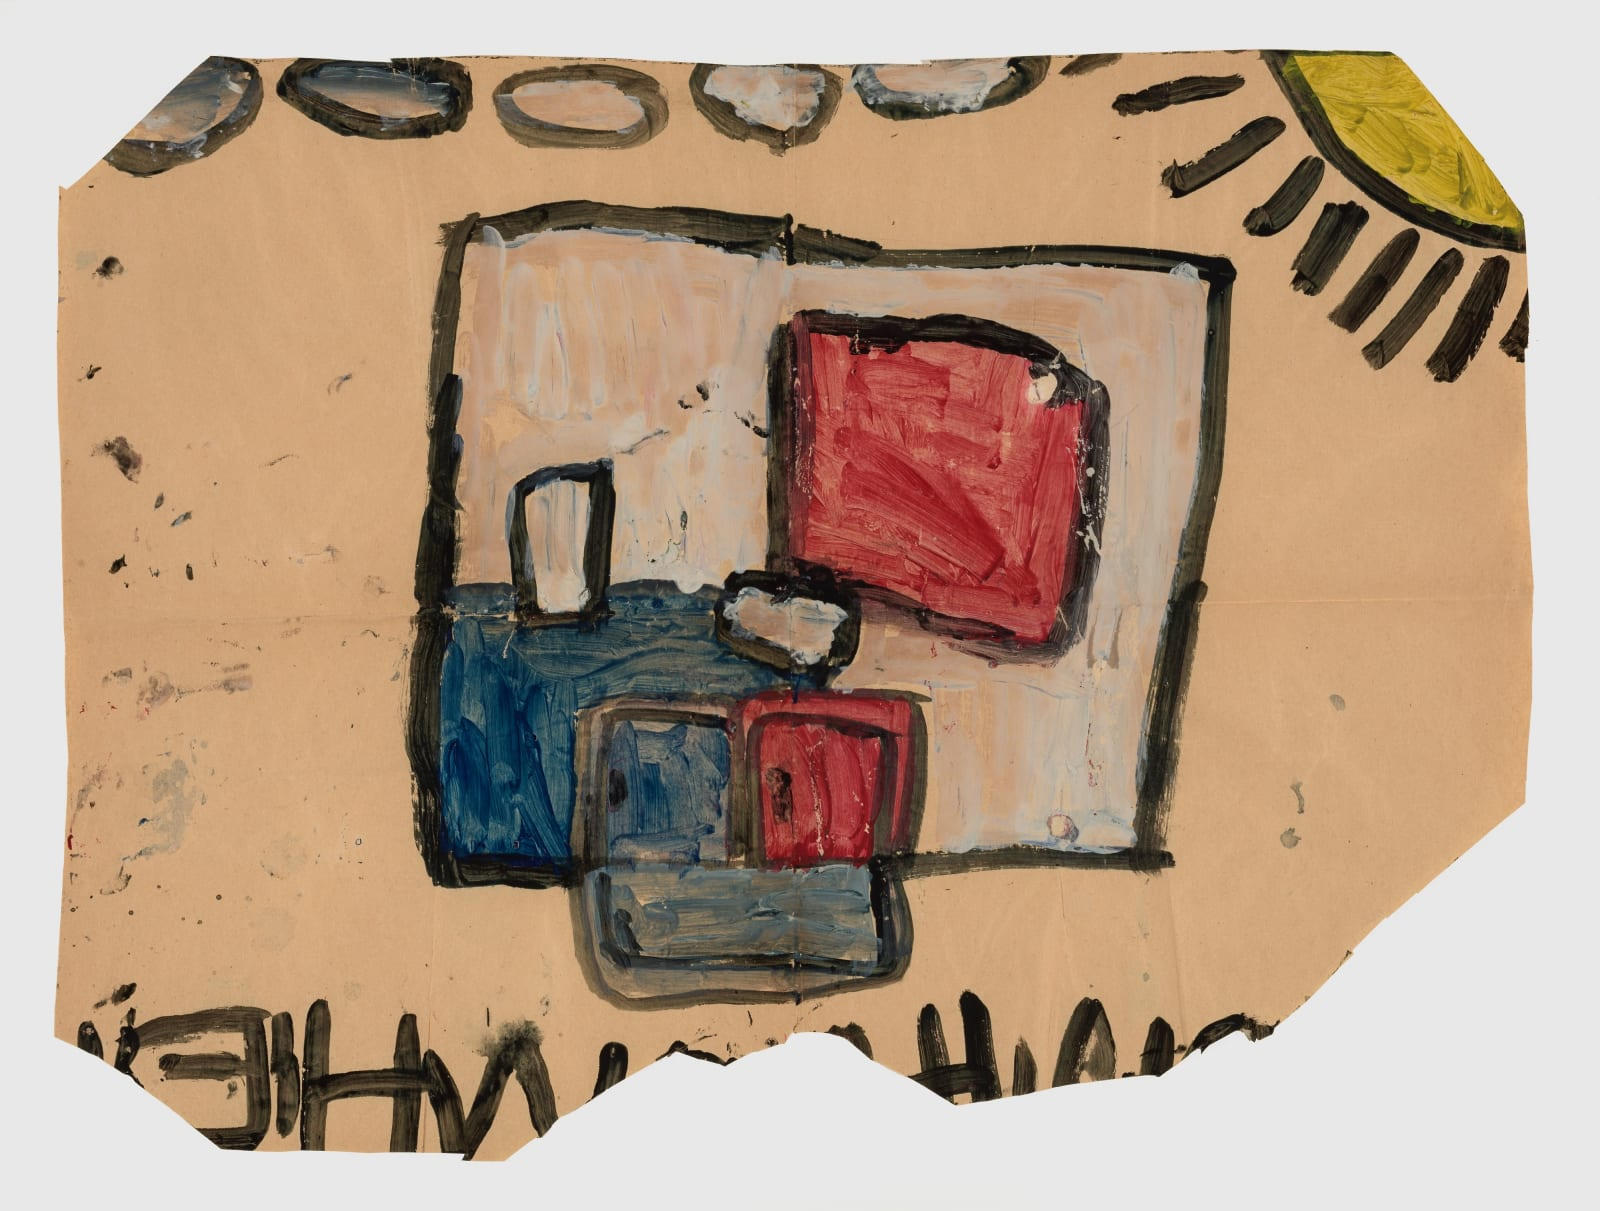 Untitled, 1972-1980 Tempera on paper 20.25 x 27.5 in (51.4 x 69.8 cm) (LM 64)